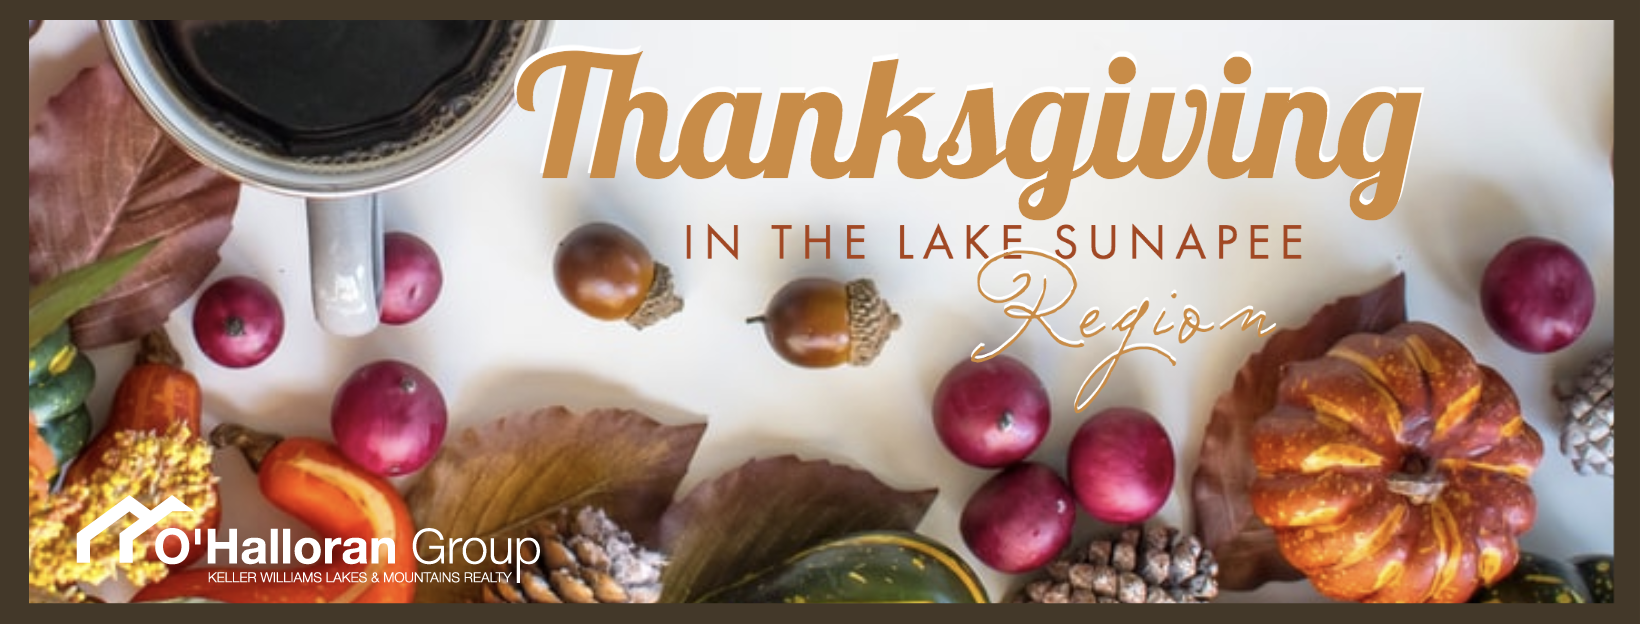 Thanksgiving 2020 - Lake Sunapee Region